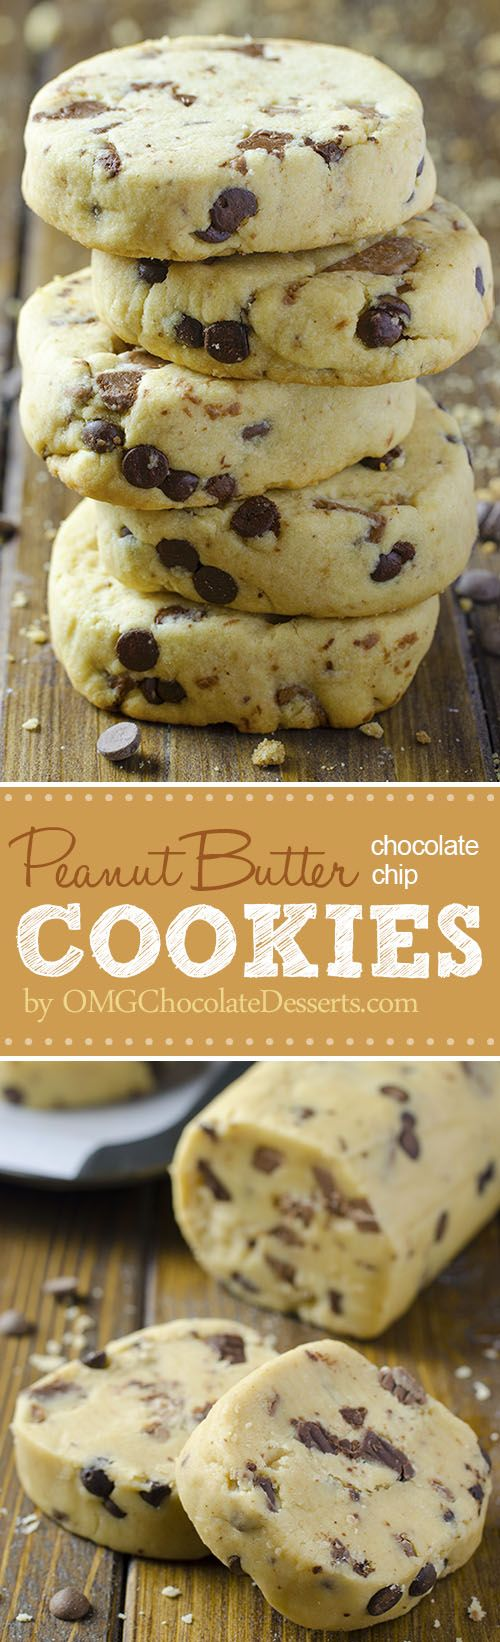 Chocolate Chip Shortbread Cookies with Peanut Butter - Chocolate Desserts OMG